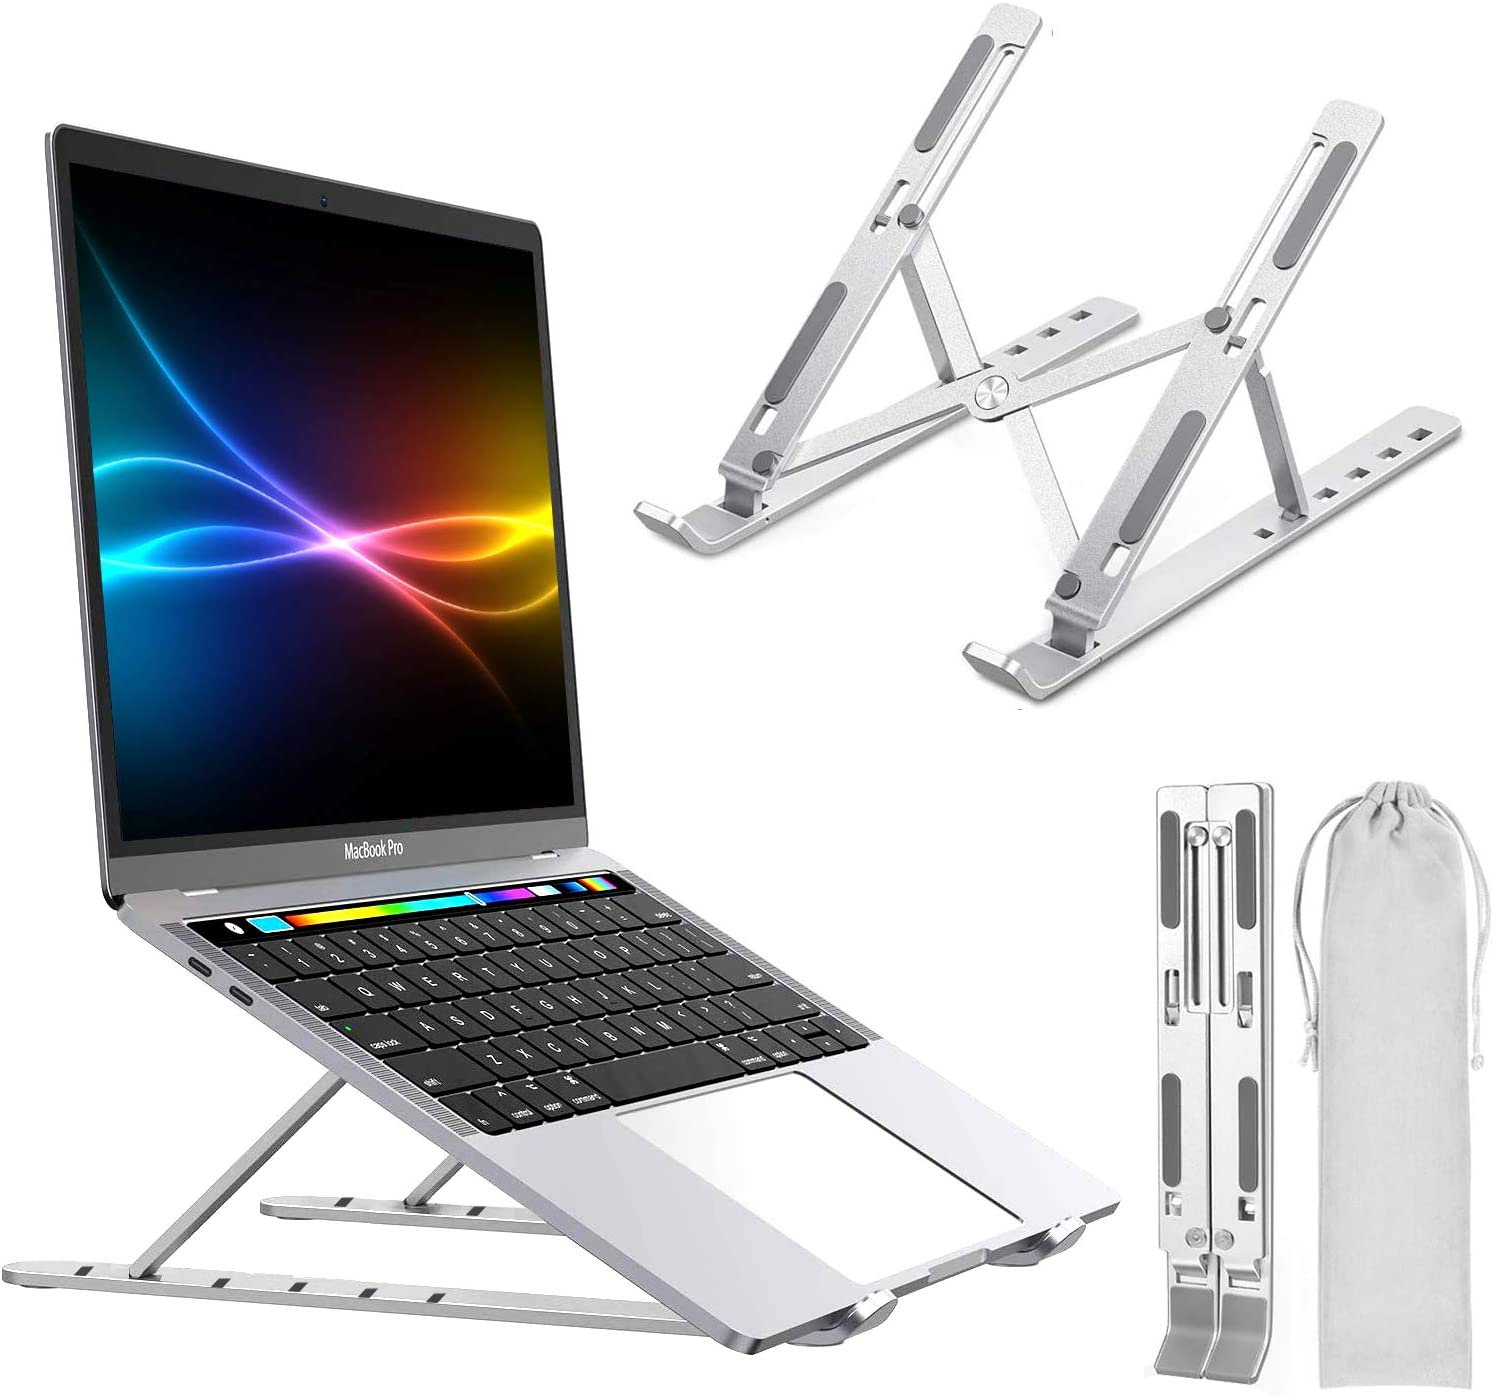 "Laptop Stand,PTUNA Portable Adjustable Tablet Computer Stand,Aluminum Alloy Folding Laptop Stand Compatible MacBook Air Pro,HP,Lenovo More 10-15.6"" Laptops & Tablet(Space Silver) (Silver)"